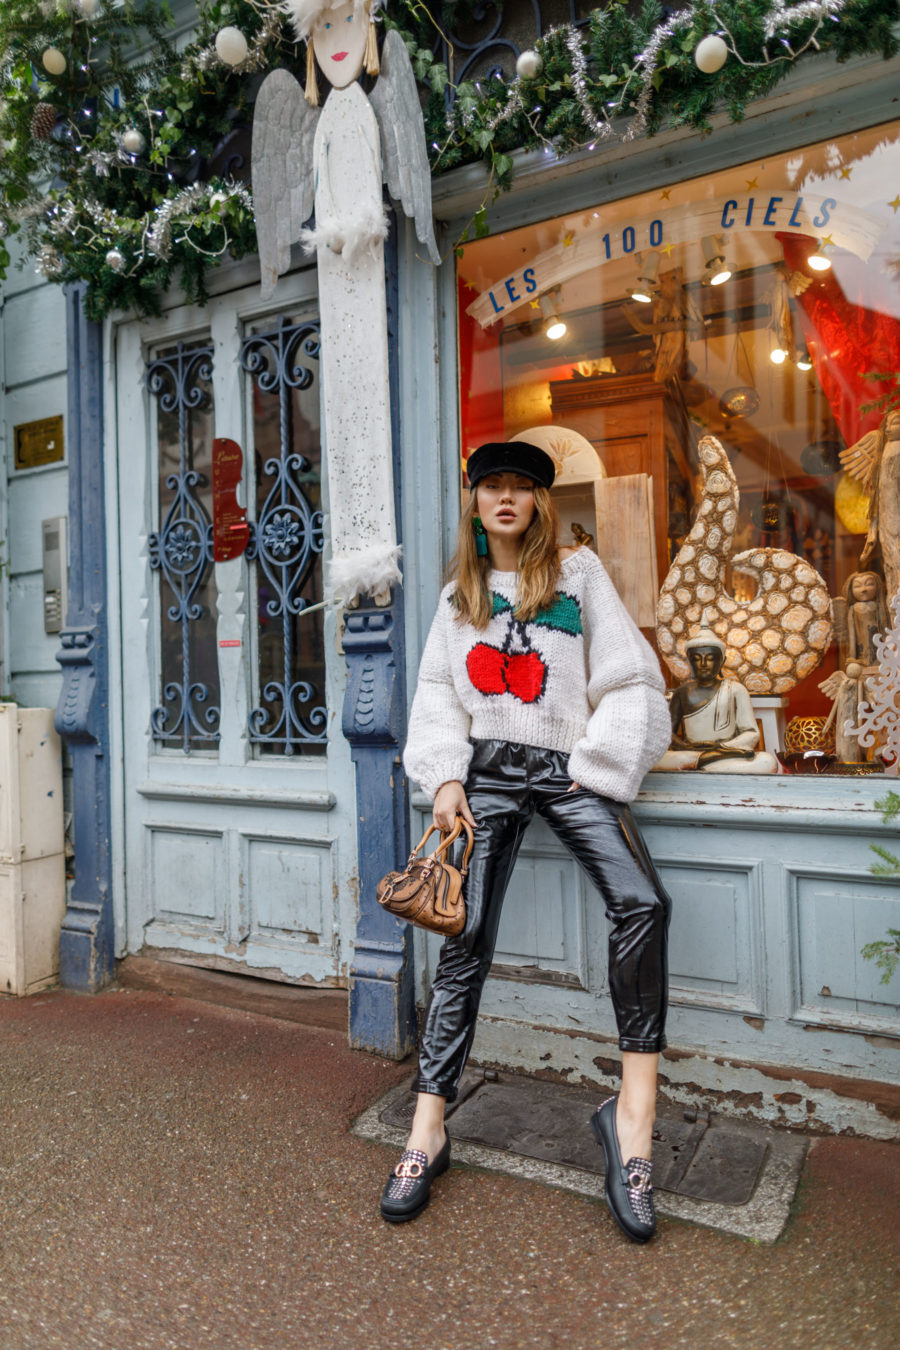 fashion blogger jessica wang shares holiday outfit ideas wearing leather pants and cherry print sweater with studded loafers // Notjessfashion.com